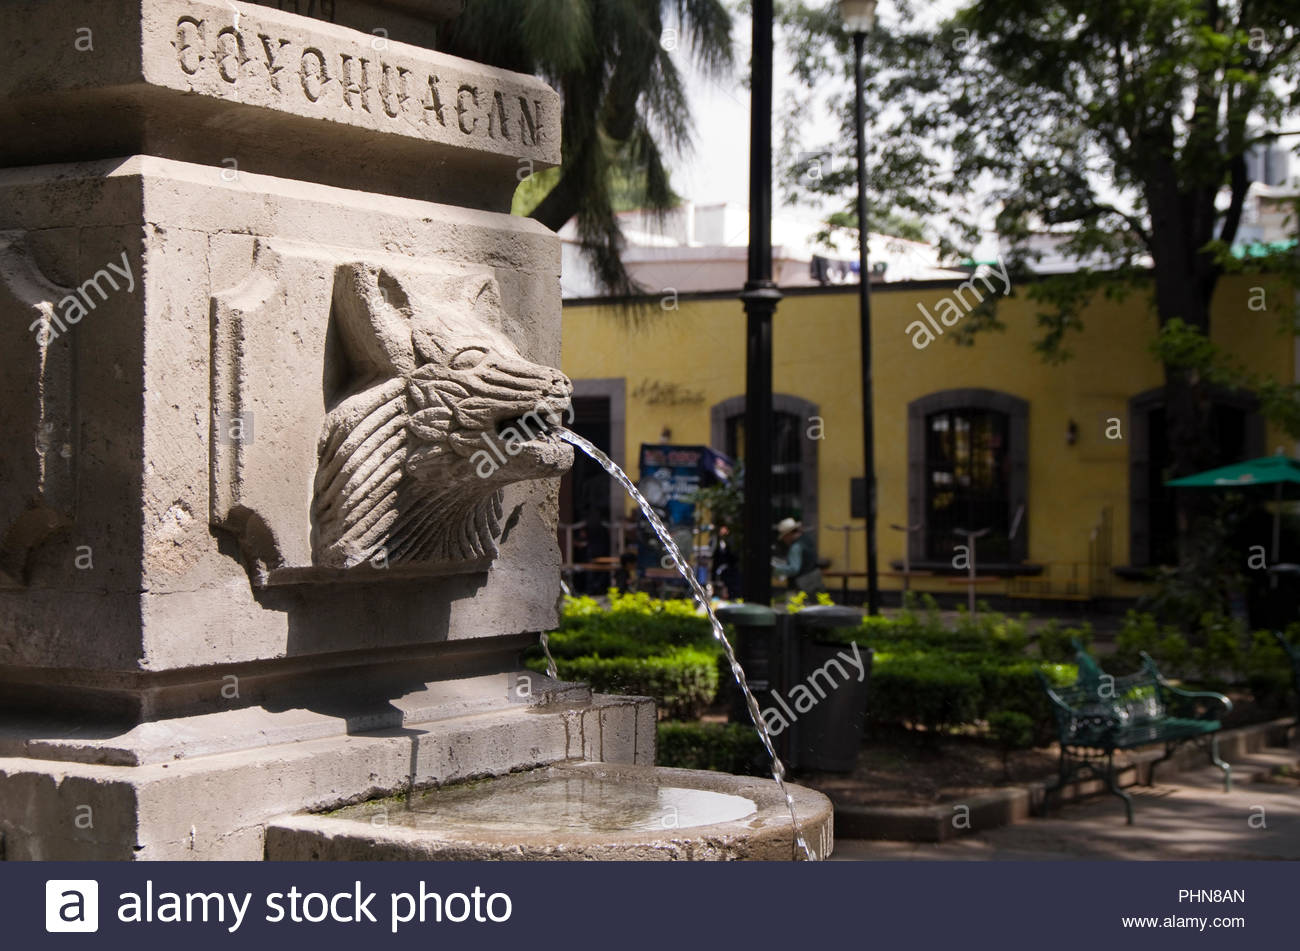 Still life of a fountain in the Jardin Centenario, in Mexico City's Coyoacan district. - Stock Image